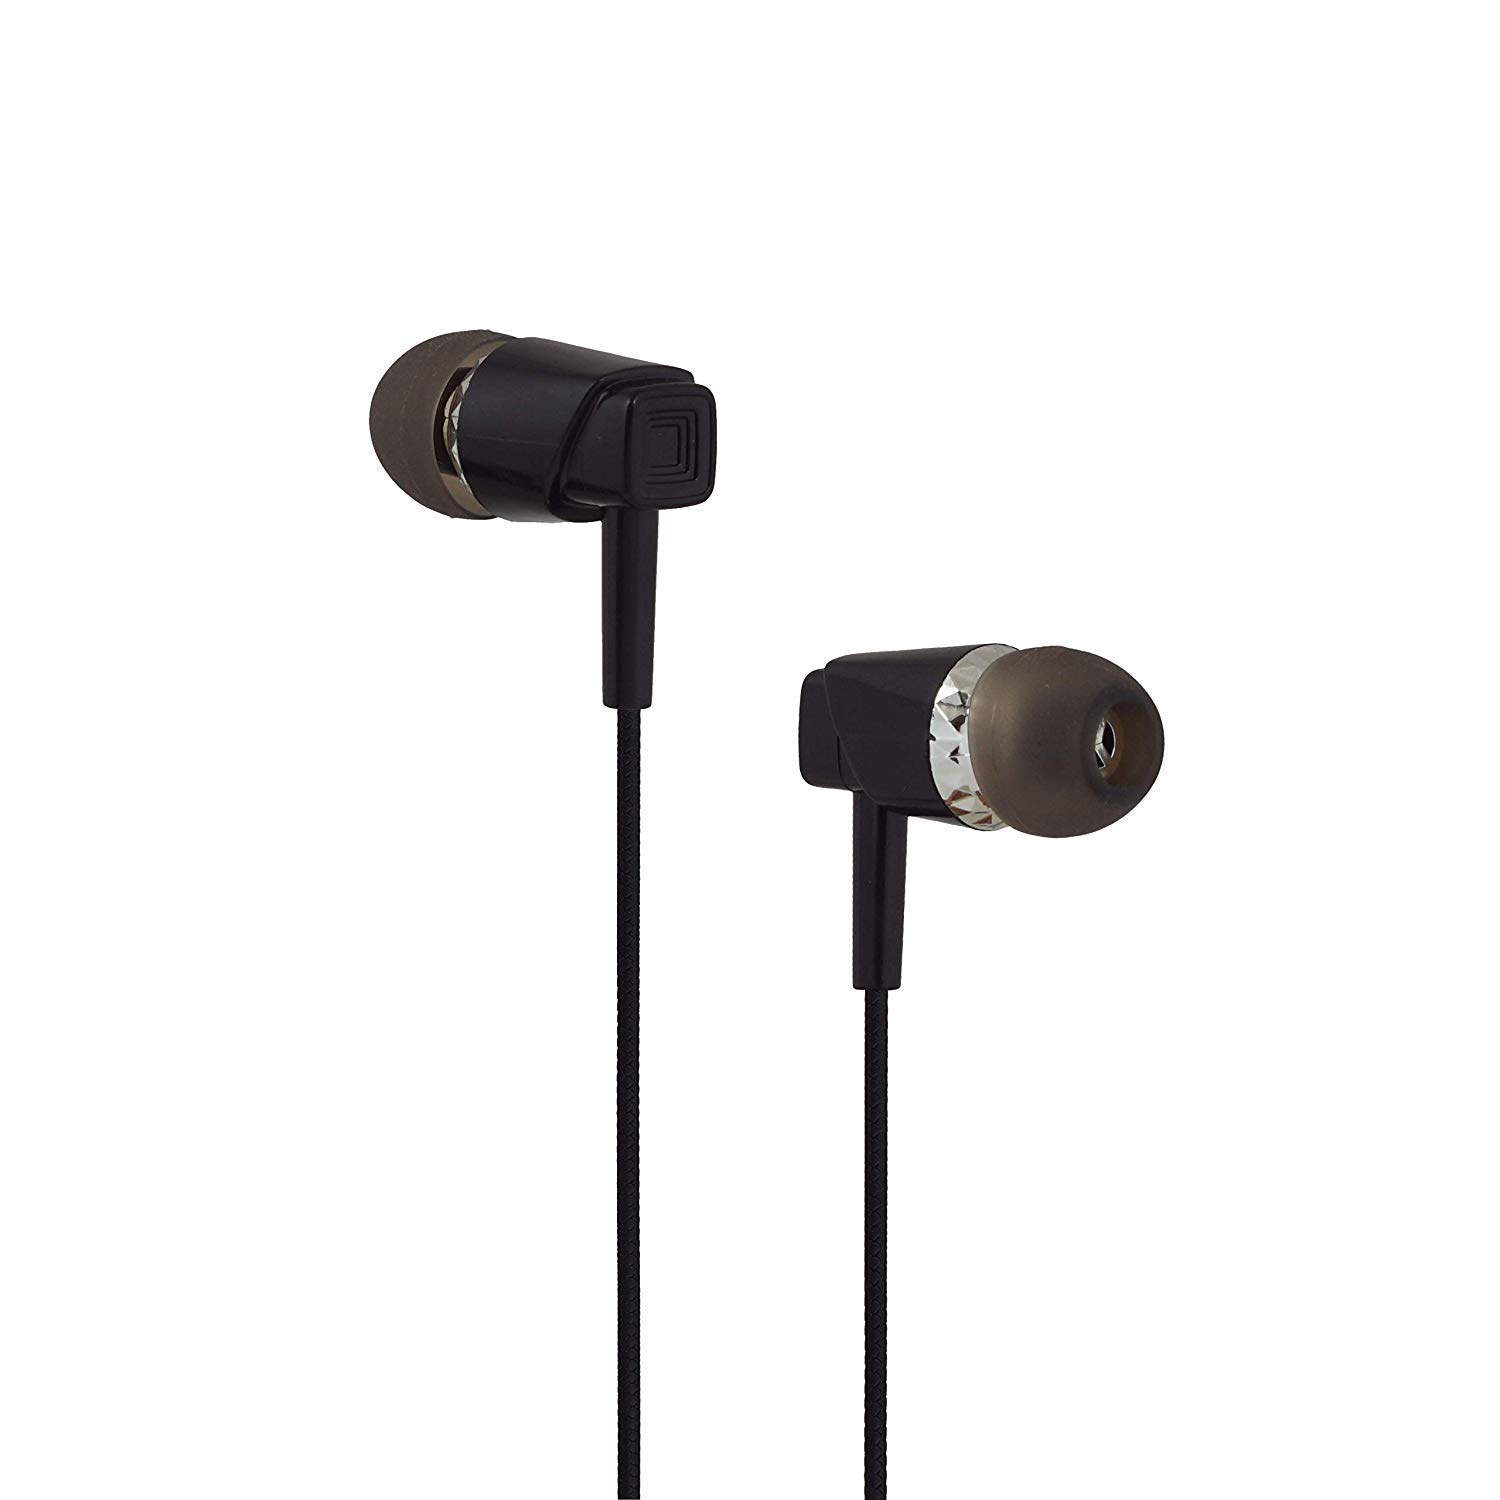 T7000 Super Extra Bass 225 Earphones Subwoofer Noise Cancellation Wired Headphones